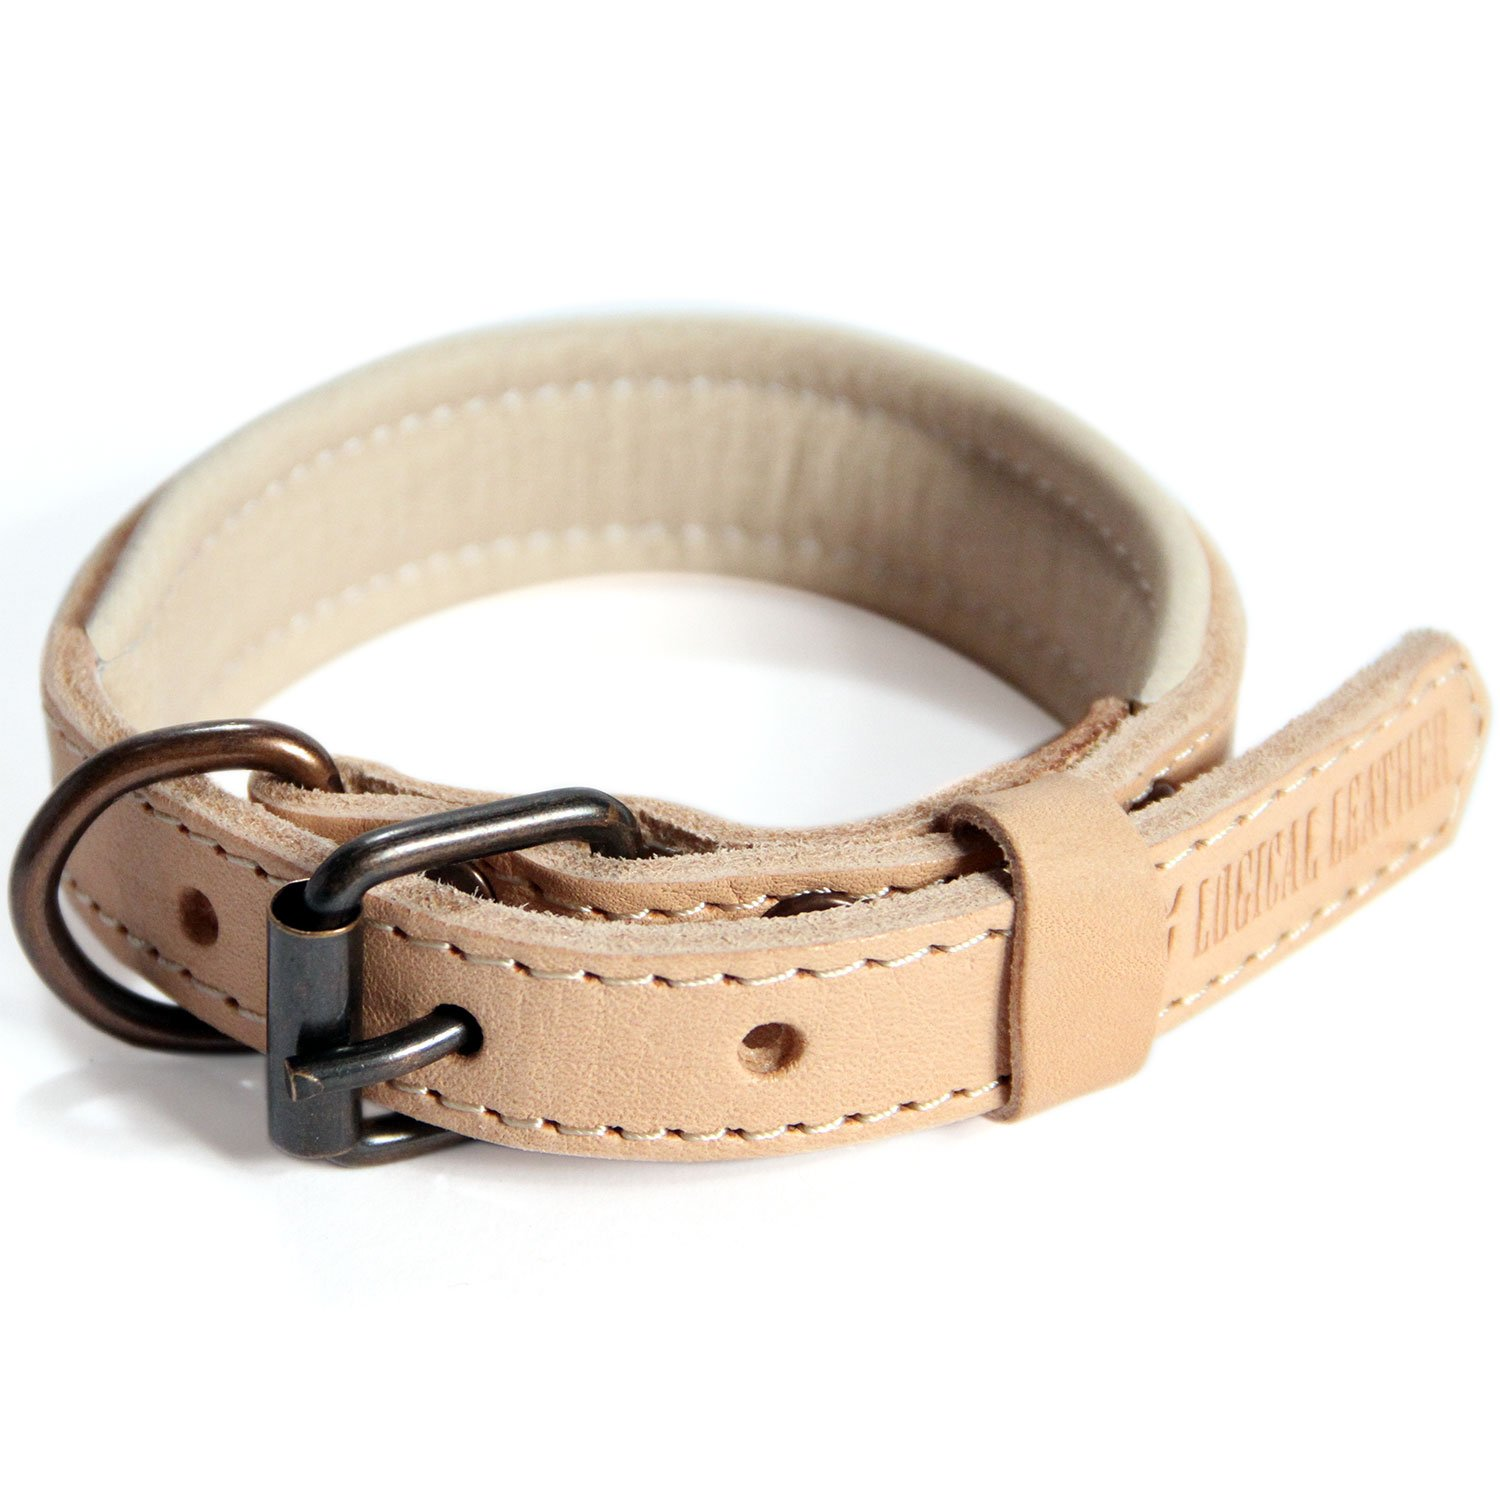 Logical Leather Padded Dog Collar - Best Full Grain Heavy Duty Genuine Leather Collar - Tan - Small